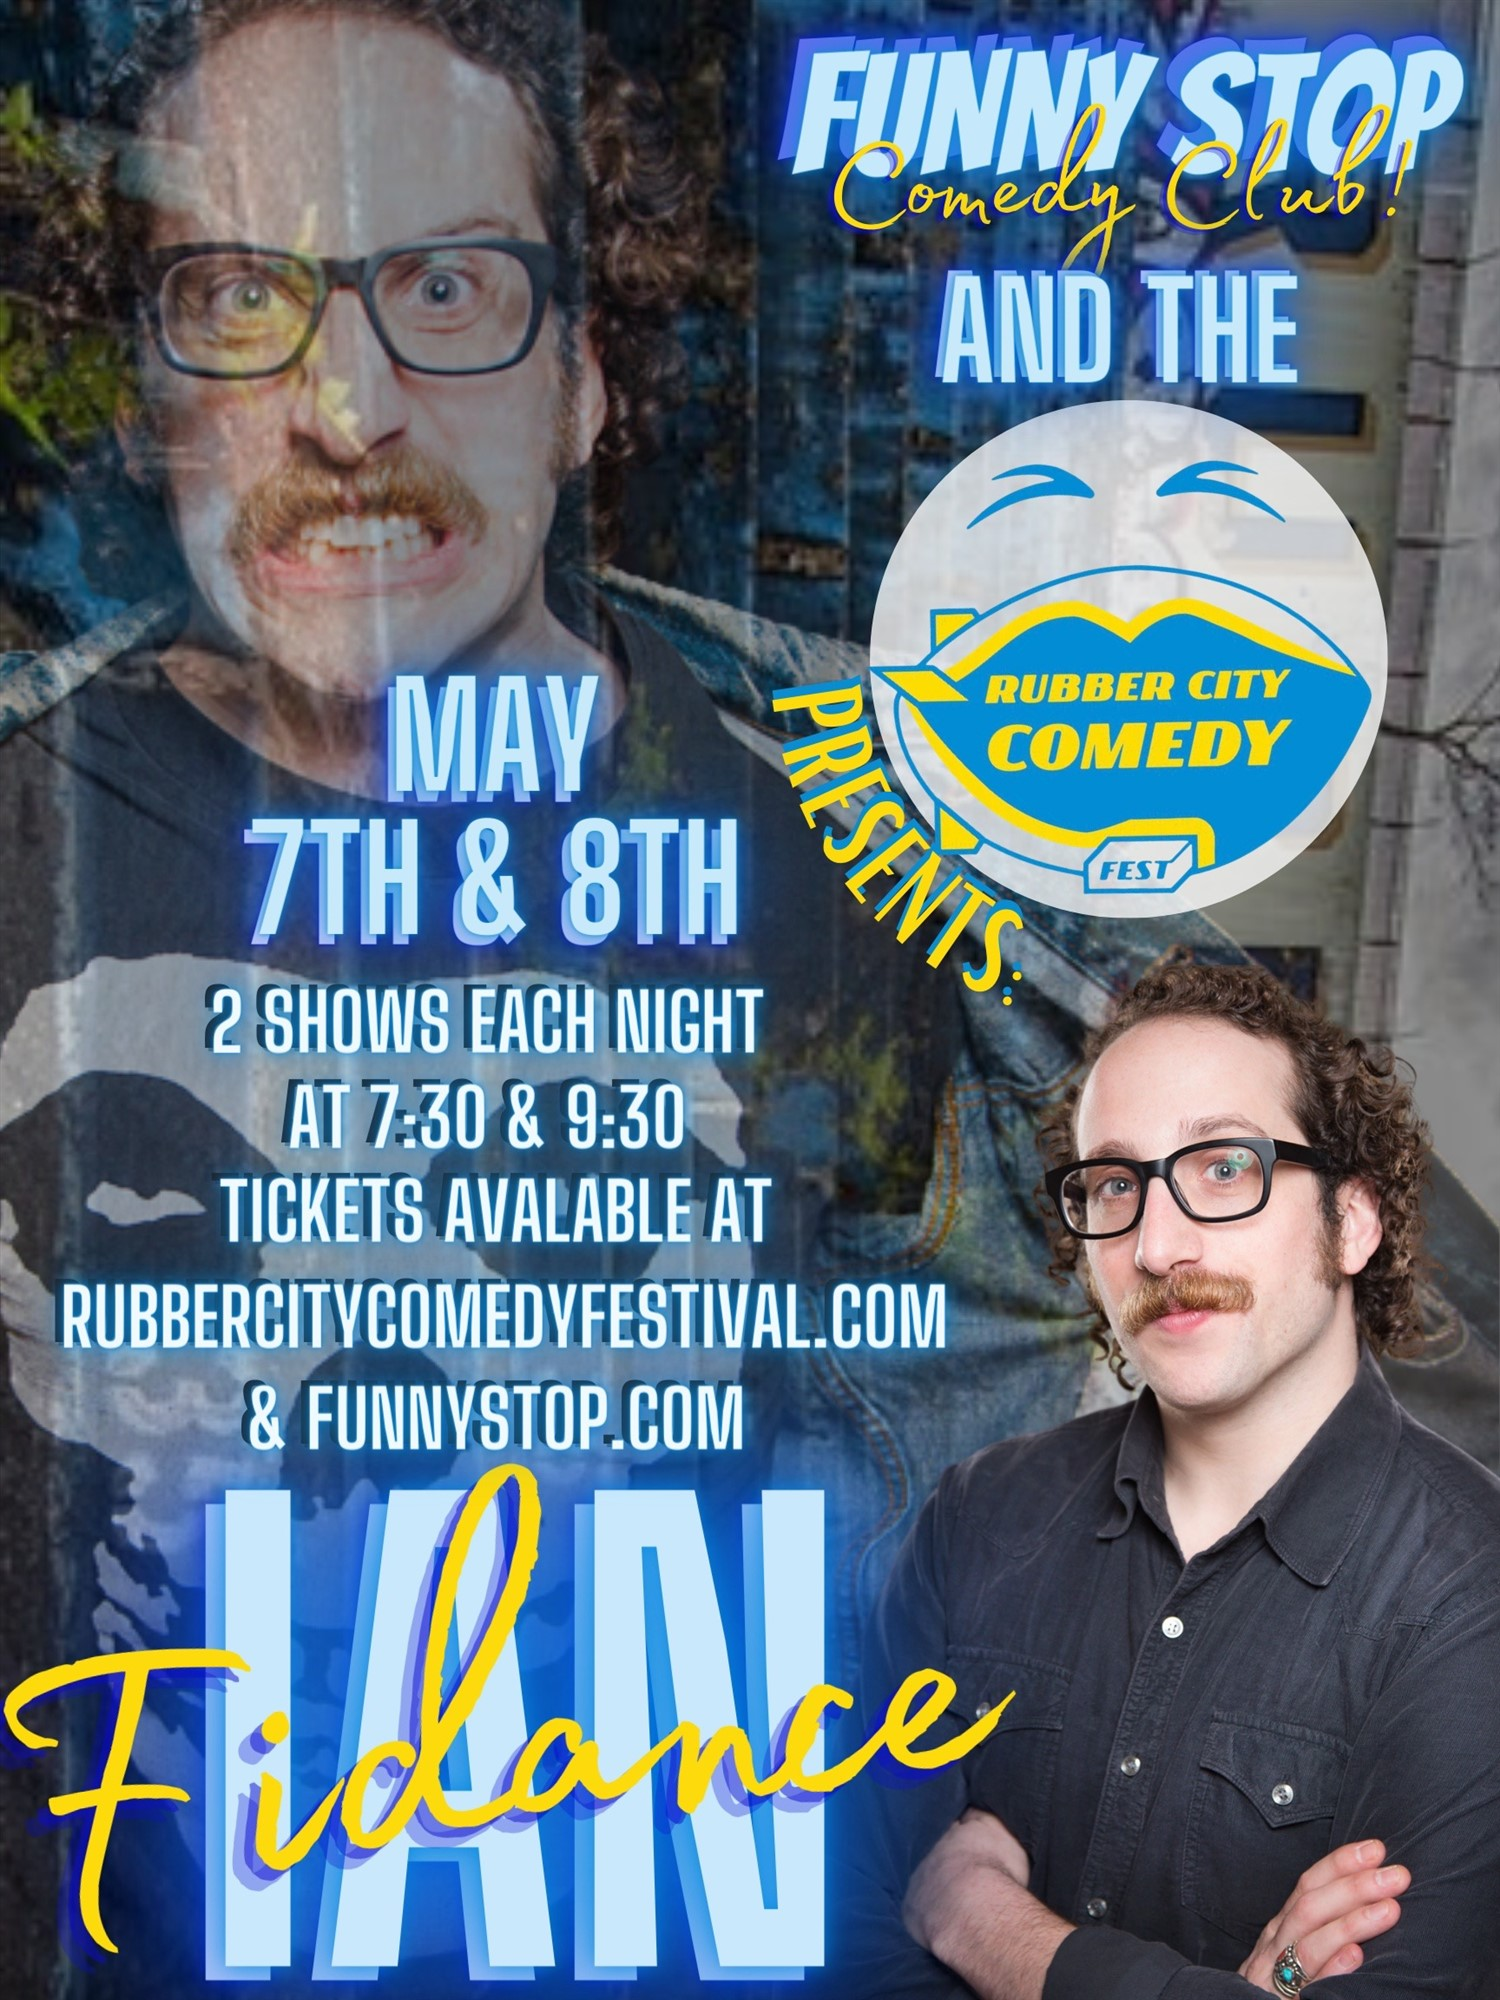 Ian Fidance 9:30 Show Rubber City Comedy Festival on may. 07, 21:30@Funny Stop Comedy Club - Buy tickets and Get information on Funny Stop funnystop.online